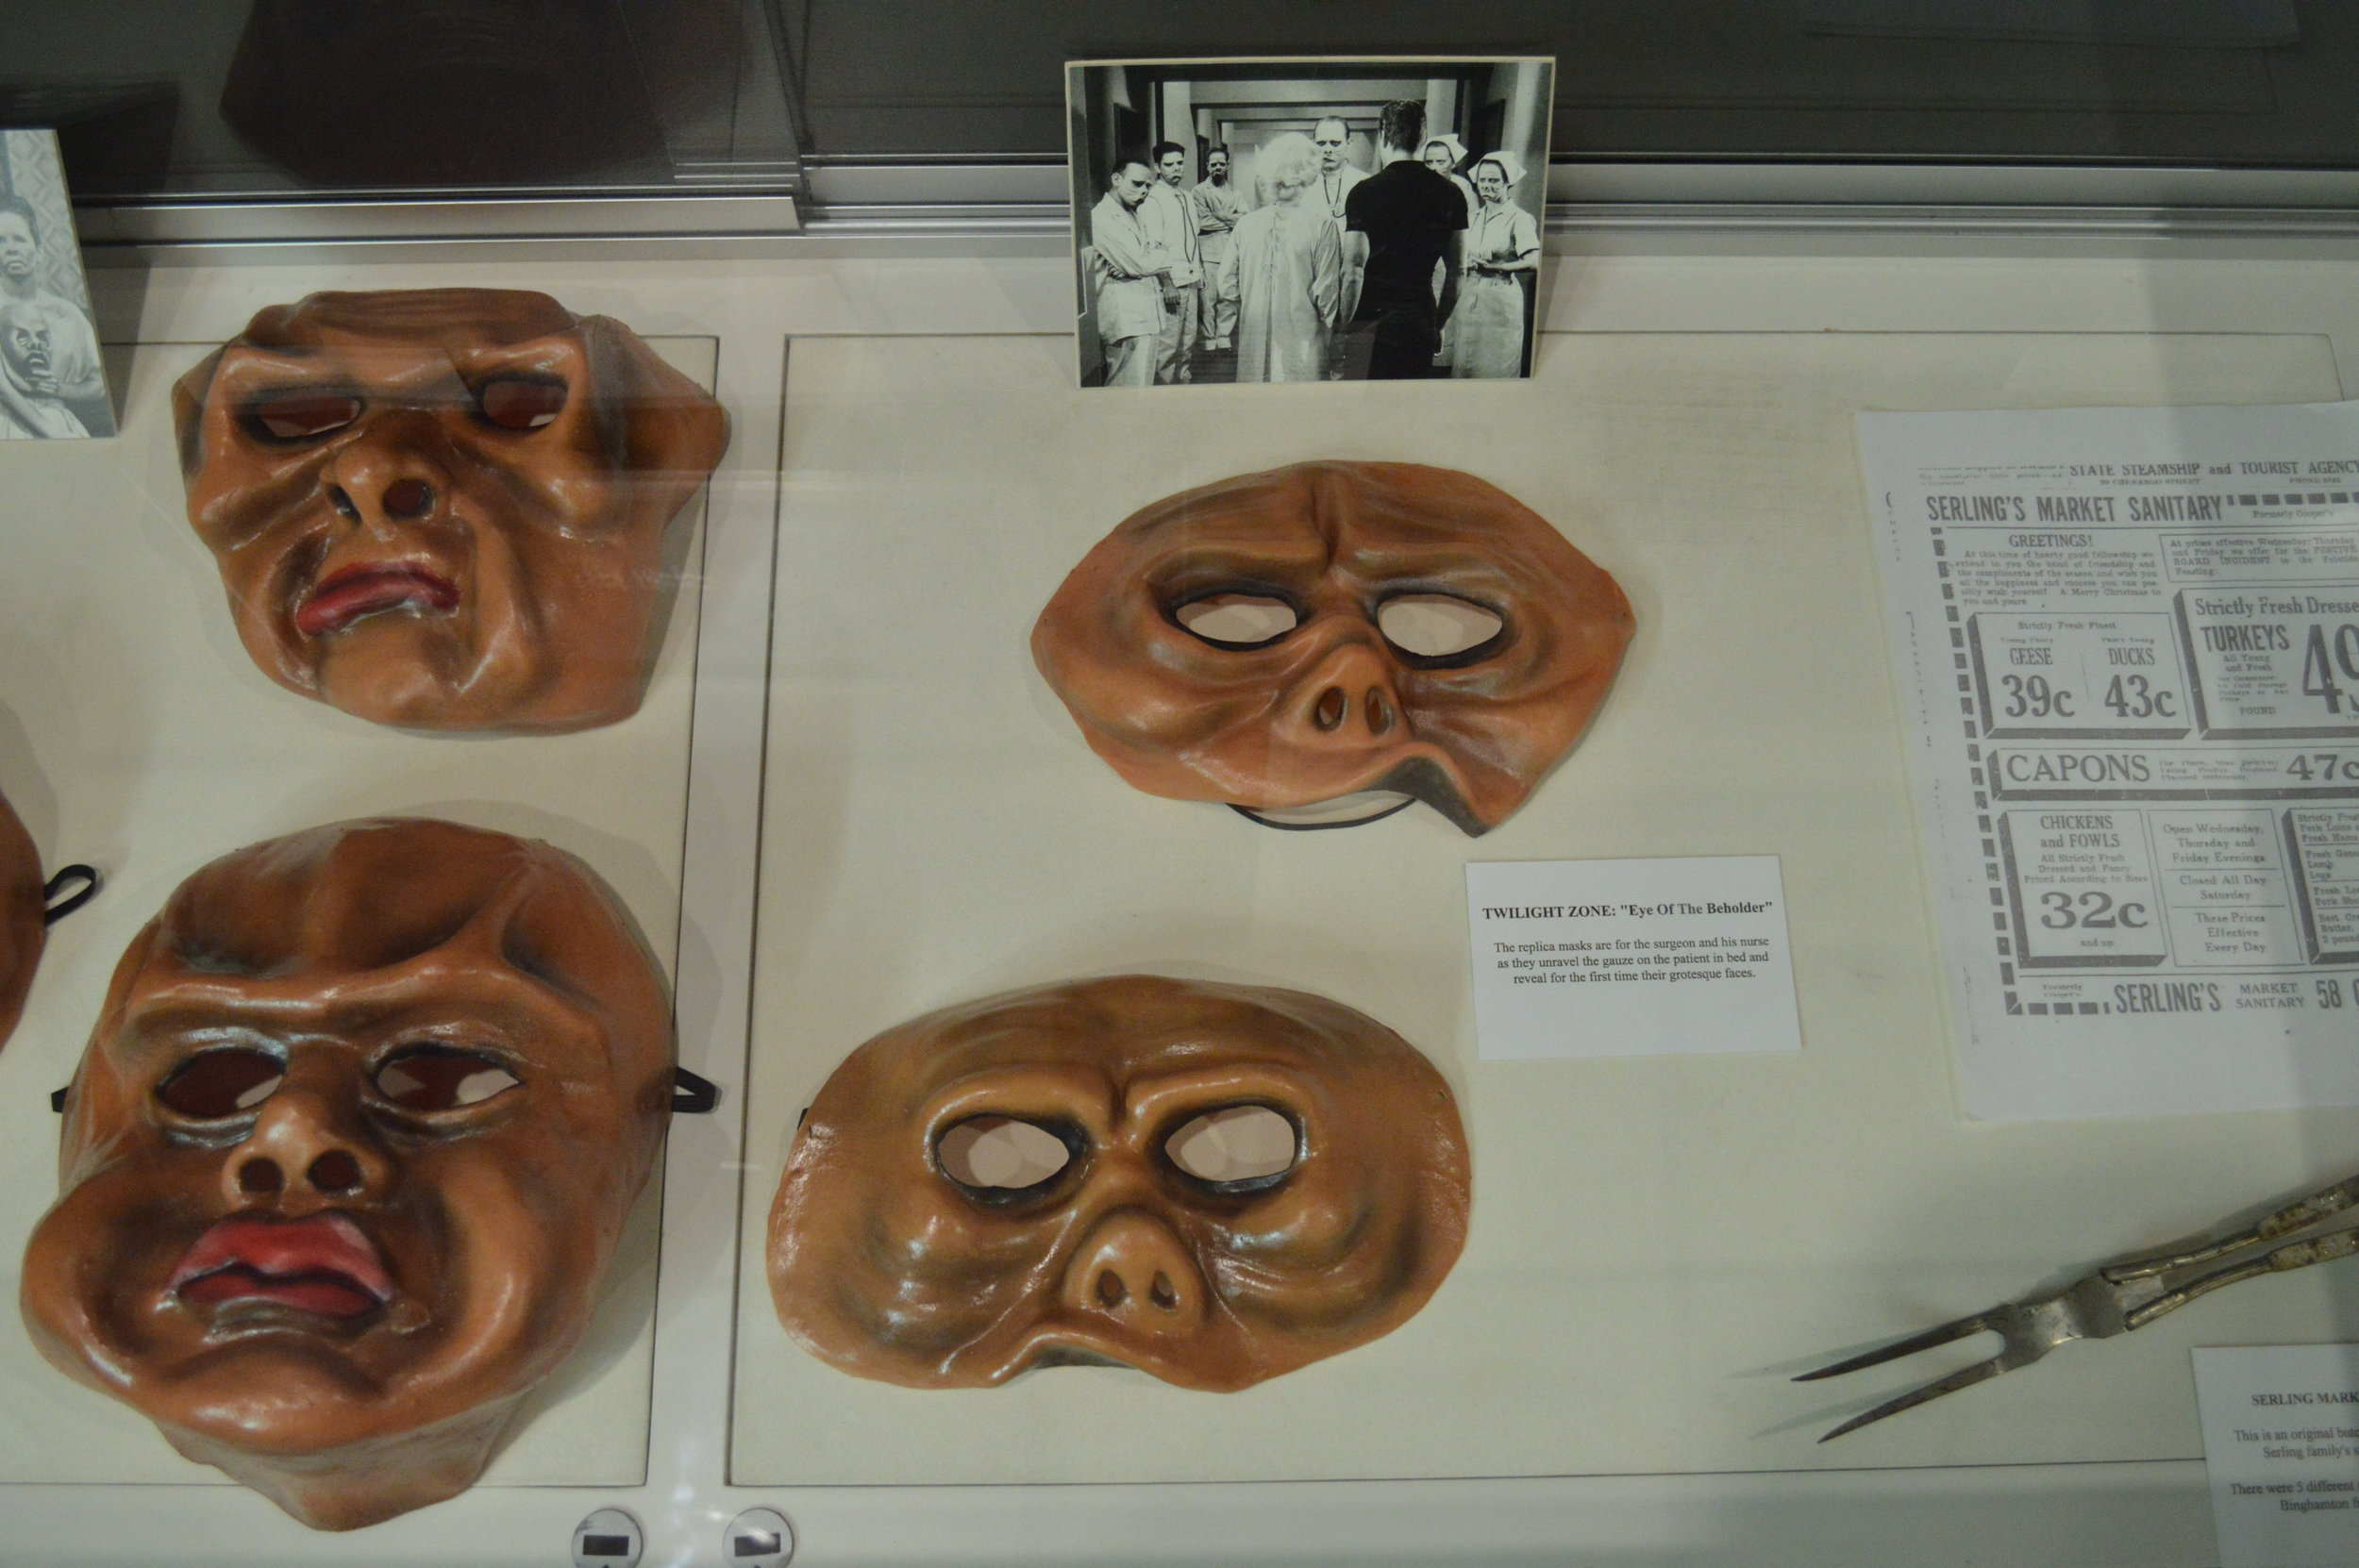 Various props from Twilight Zone episodes